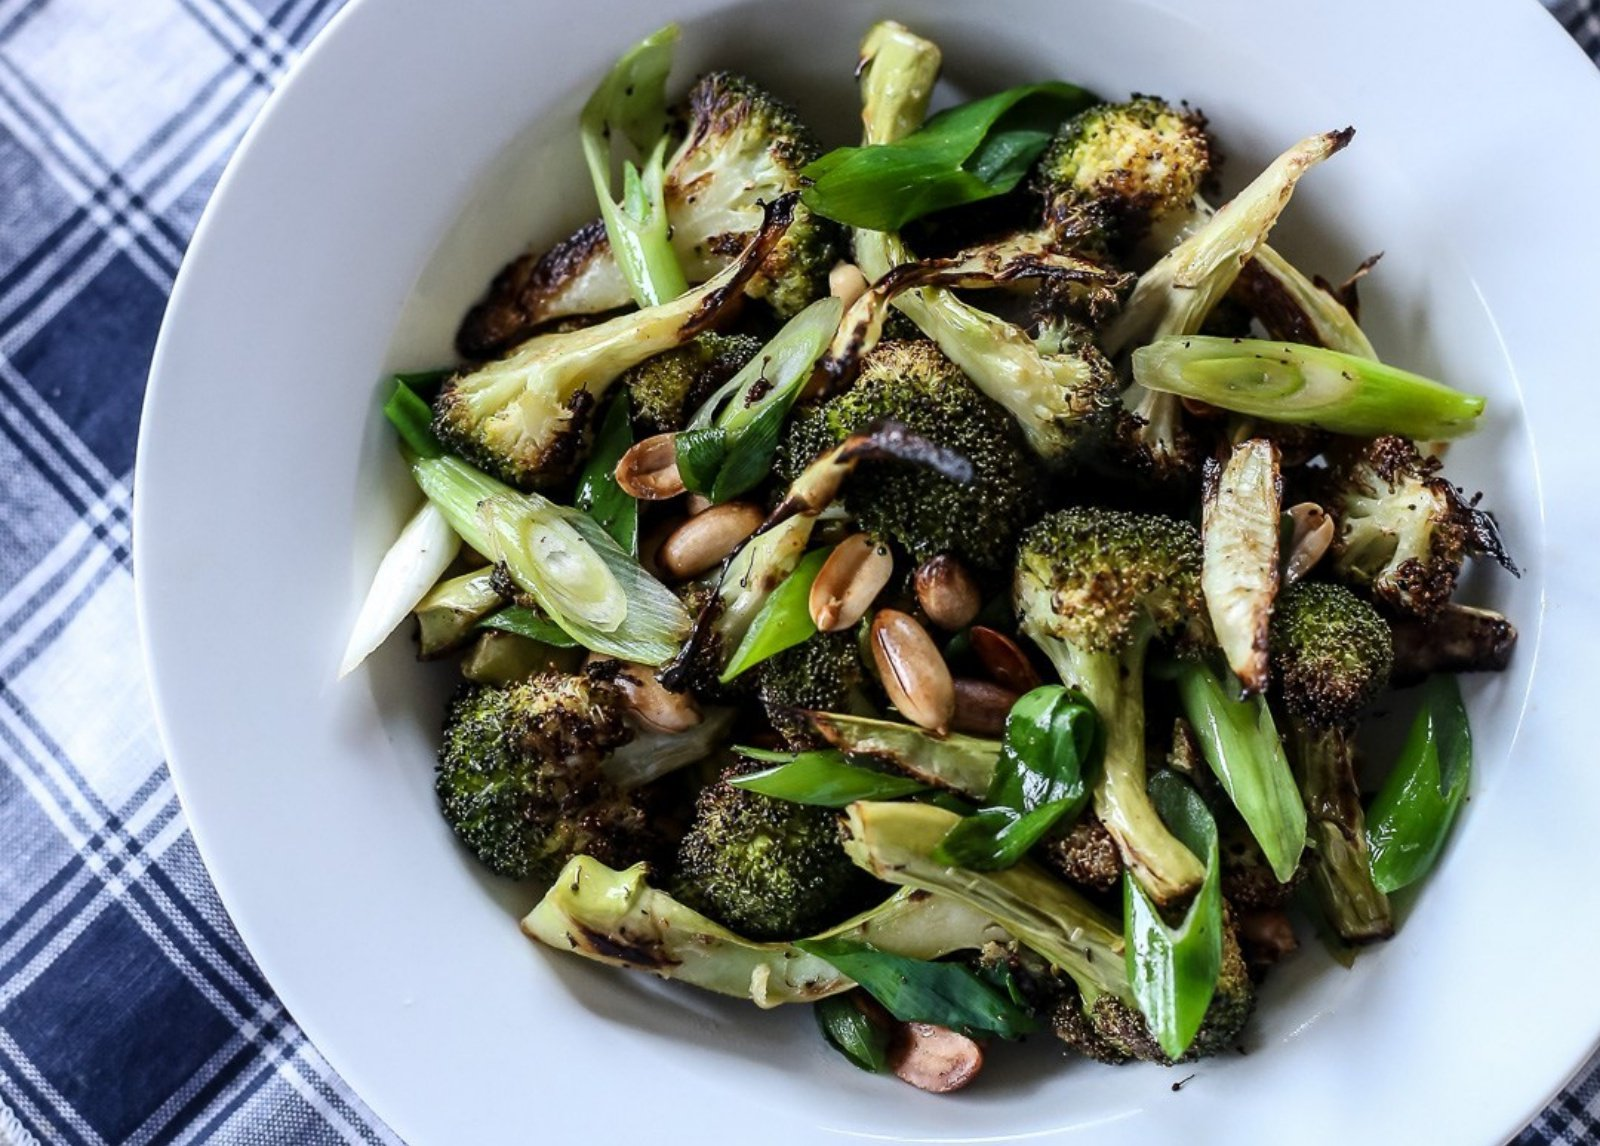 Roasted Charred Broccoli With Peanuts